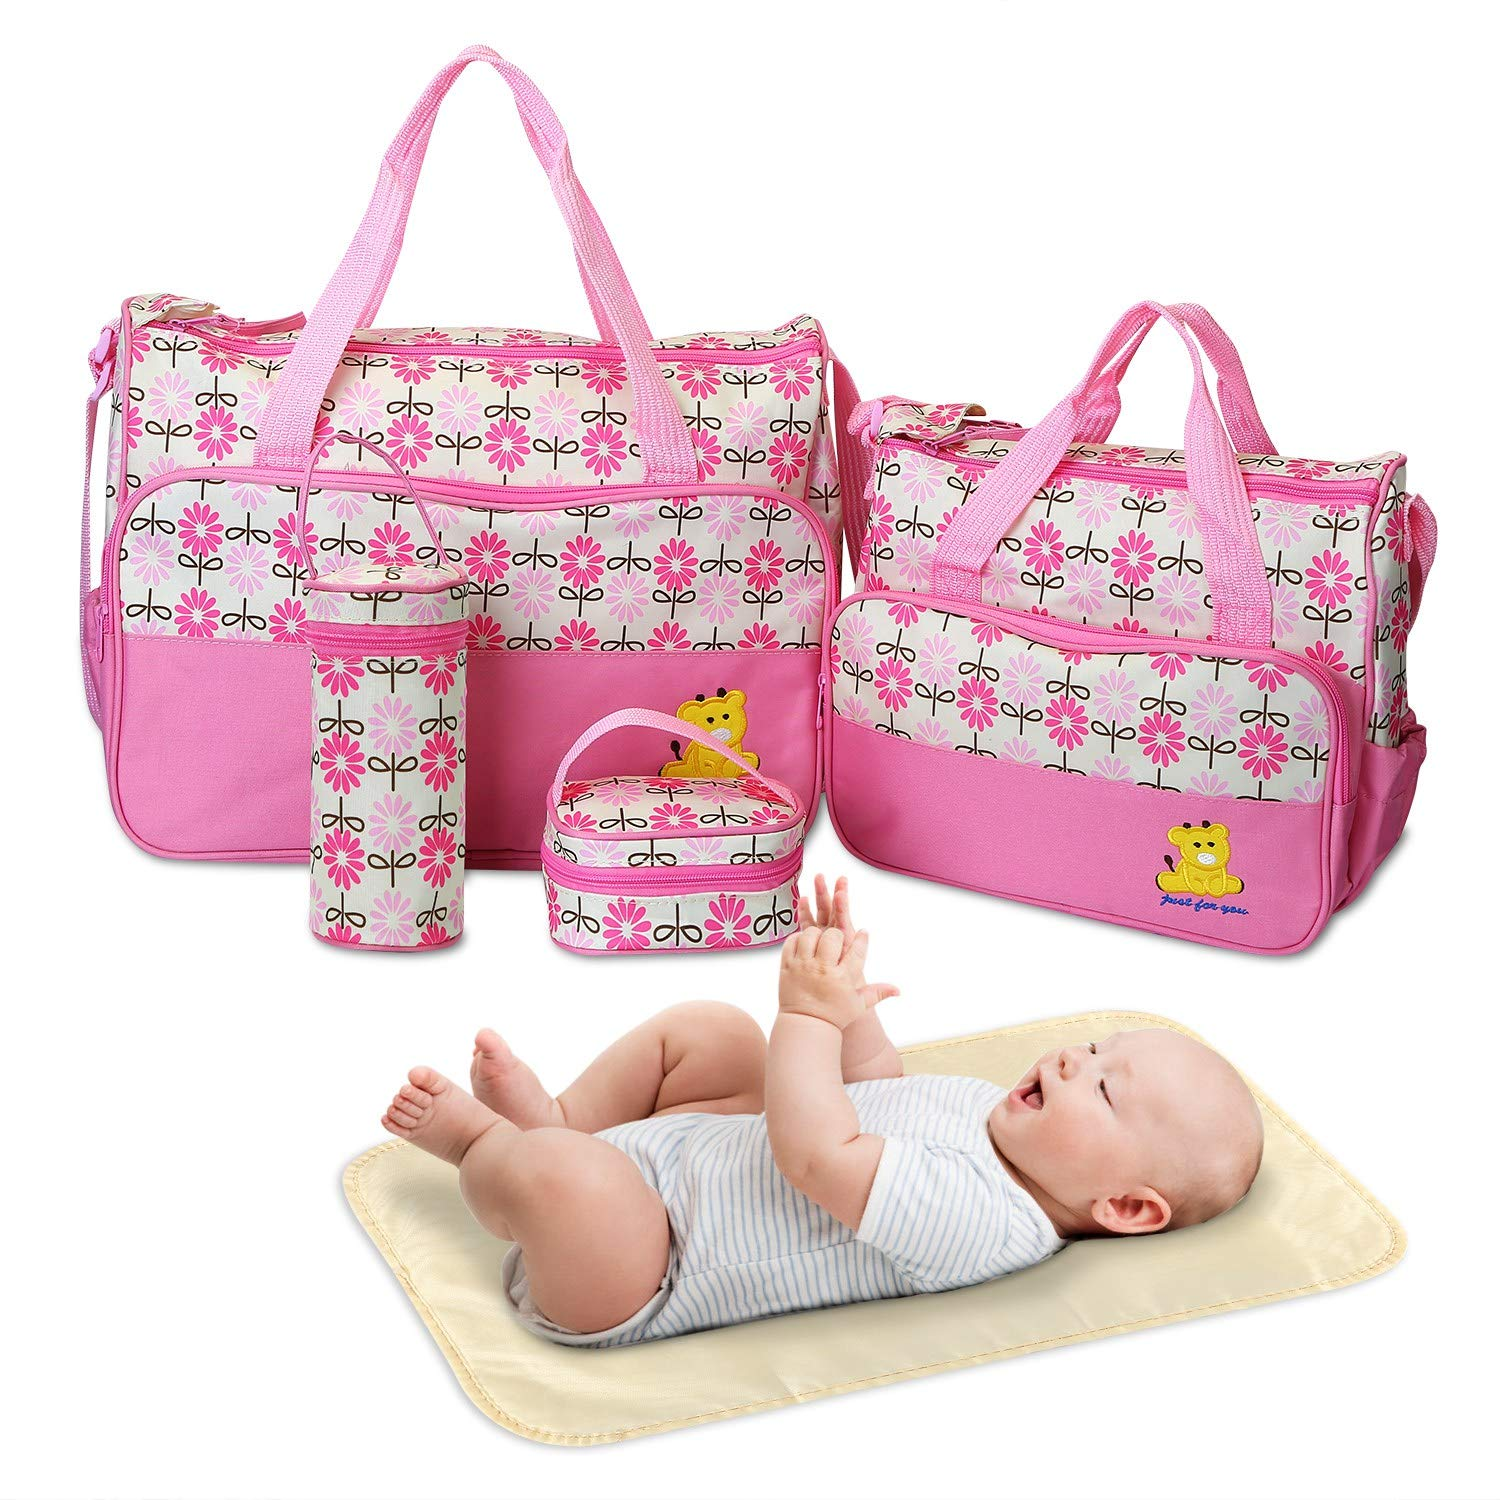 Diaper Bag Tote, Baby Bag for Baby Boy and Baby Girl, 5 Piece Set Baby Diaper Bag, for Mom and Dad (Pink)